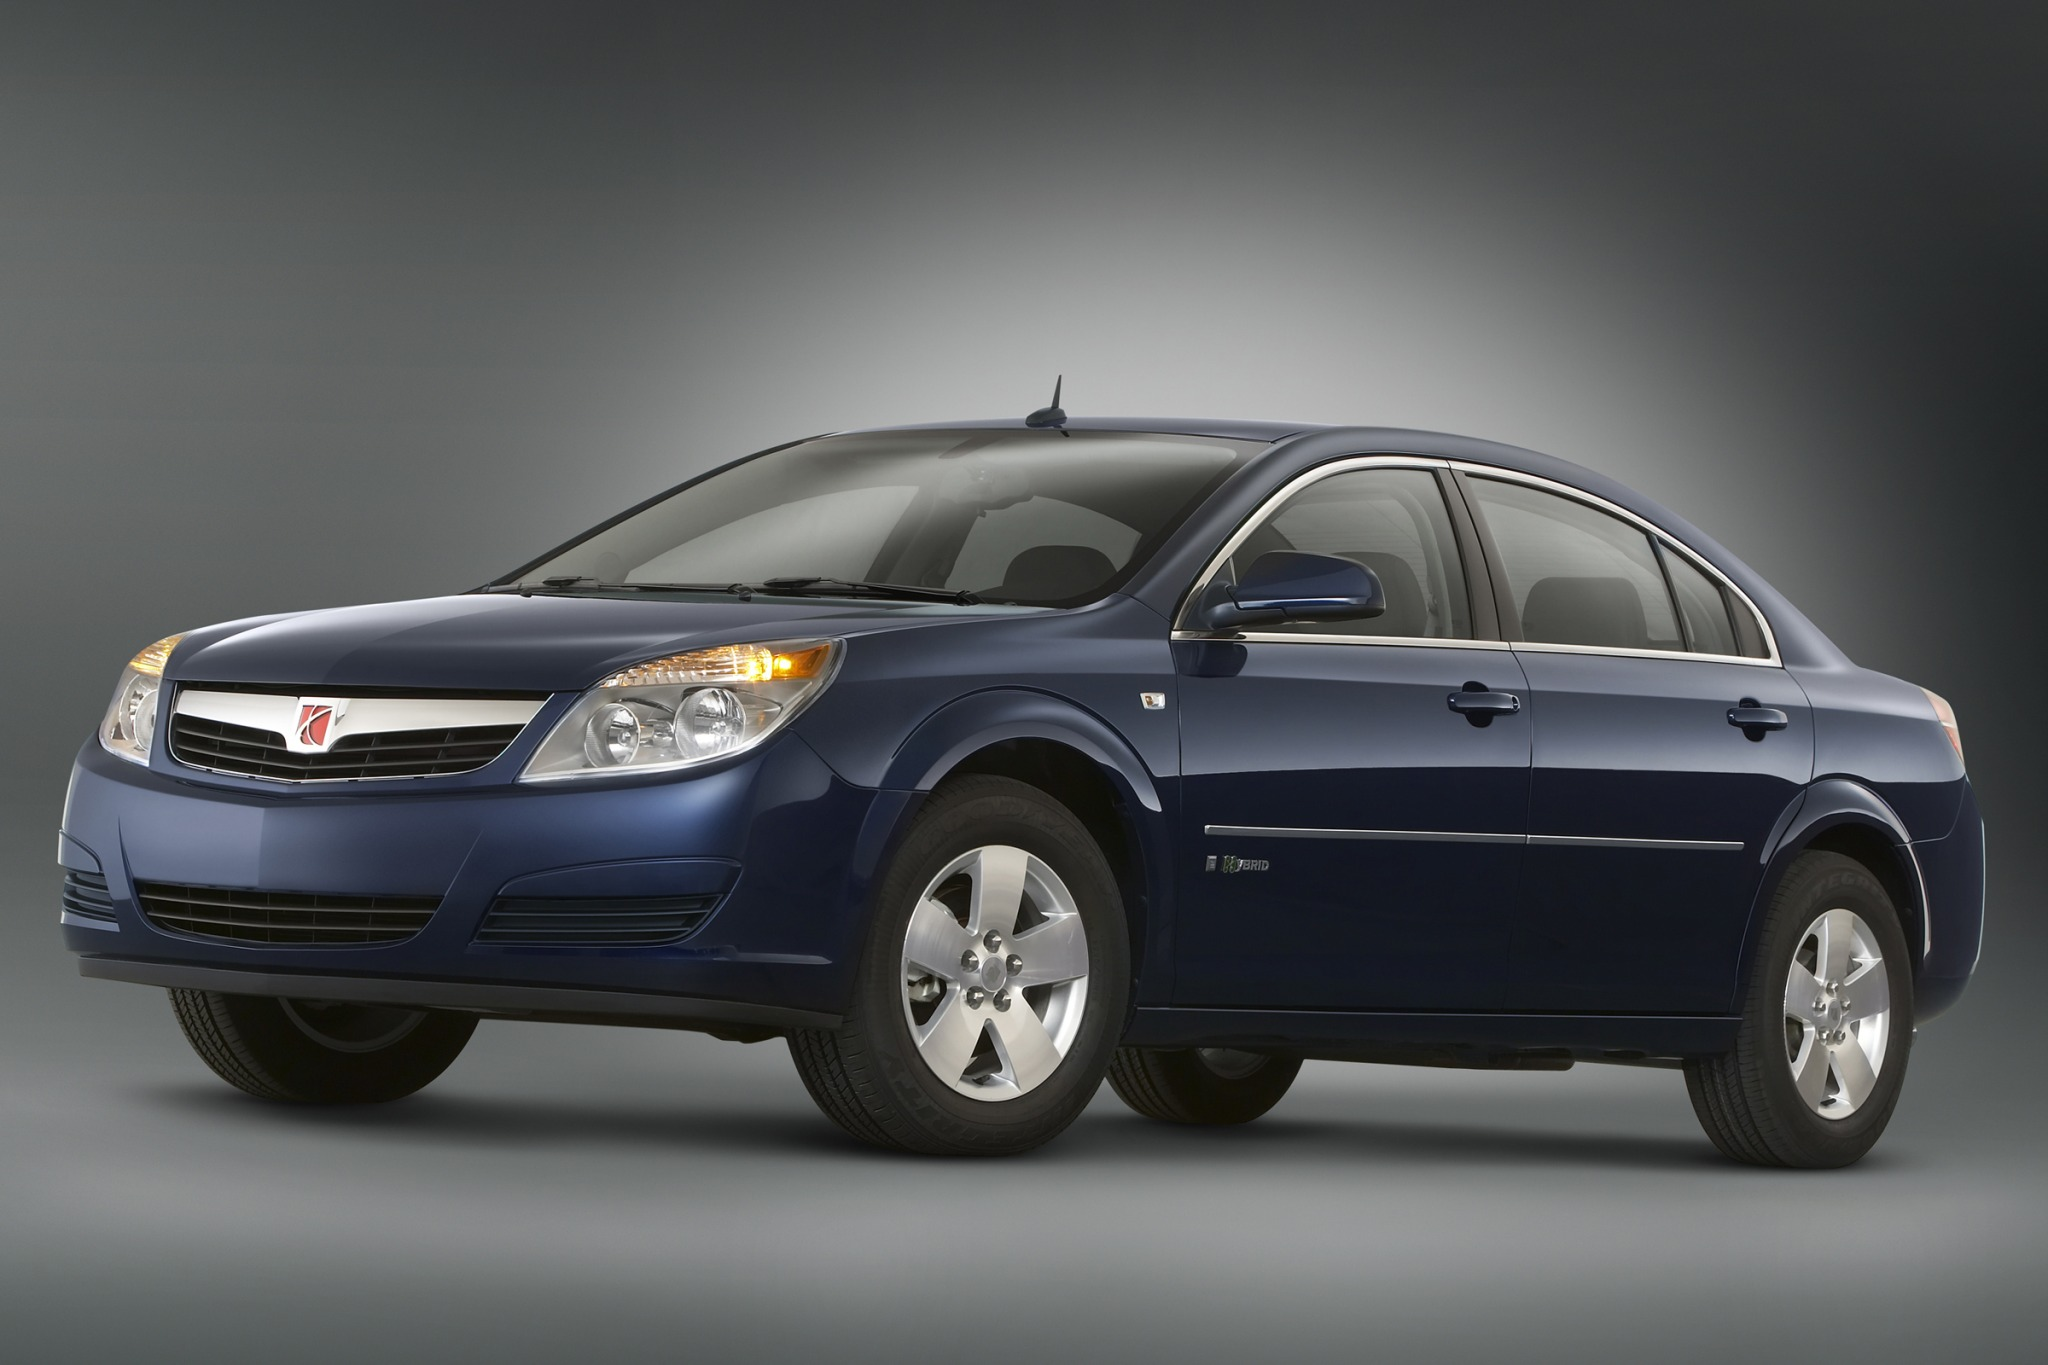 2007 Saturn Aura XR Sedan exterior #1